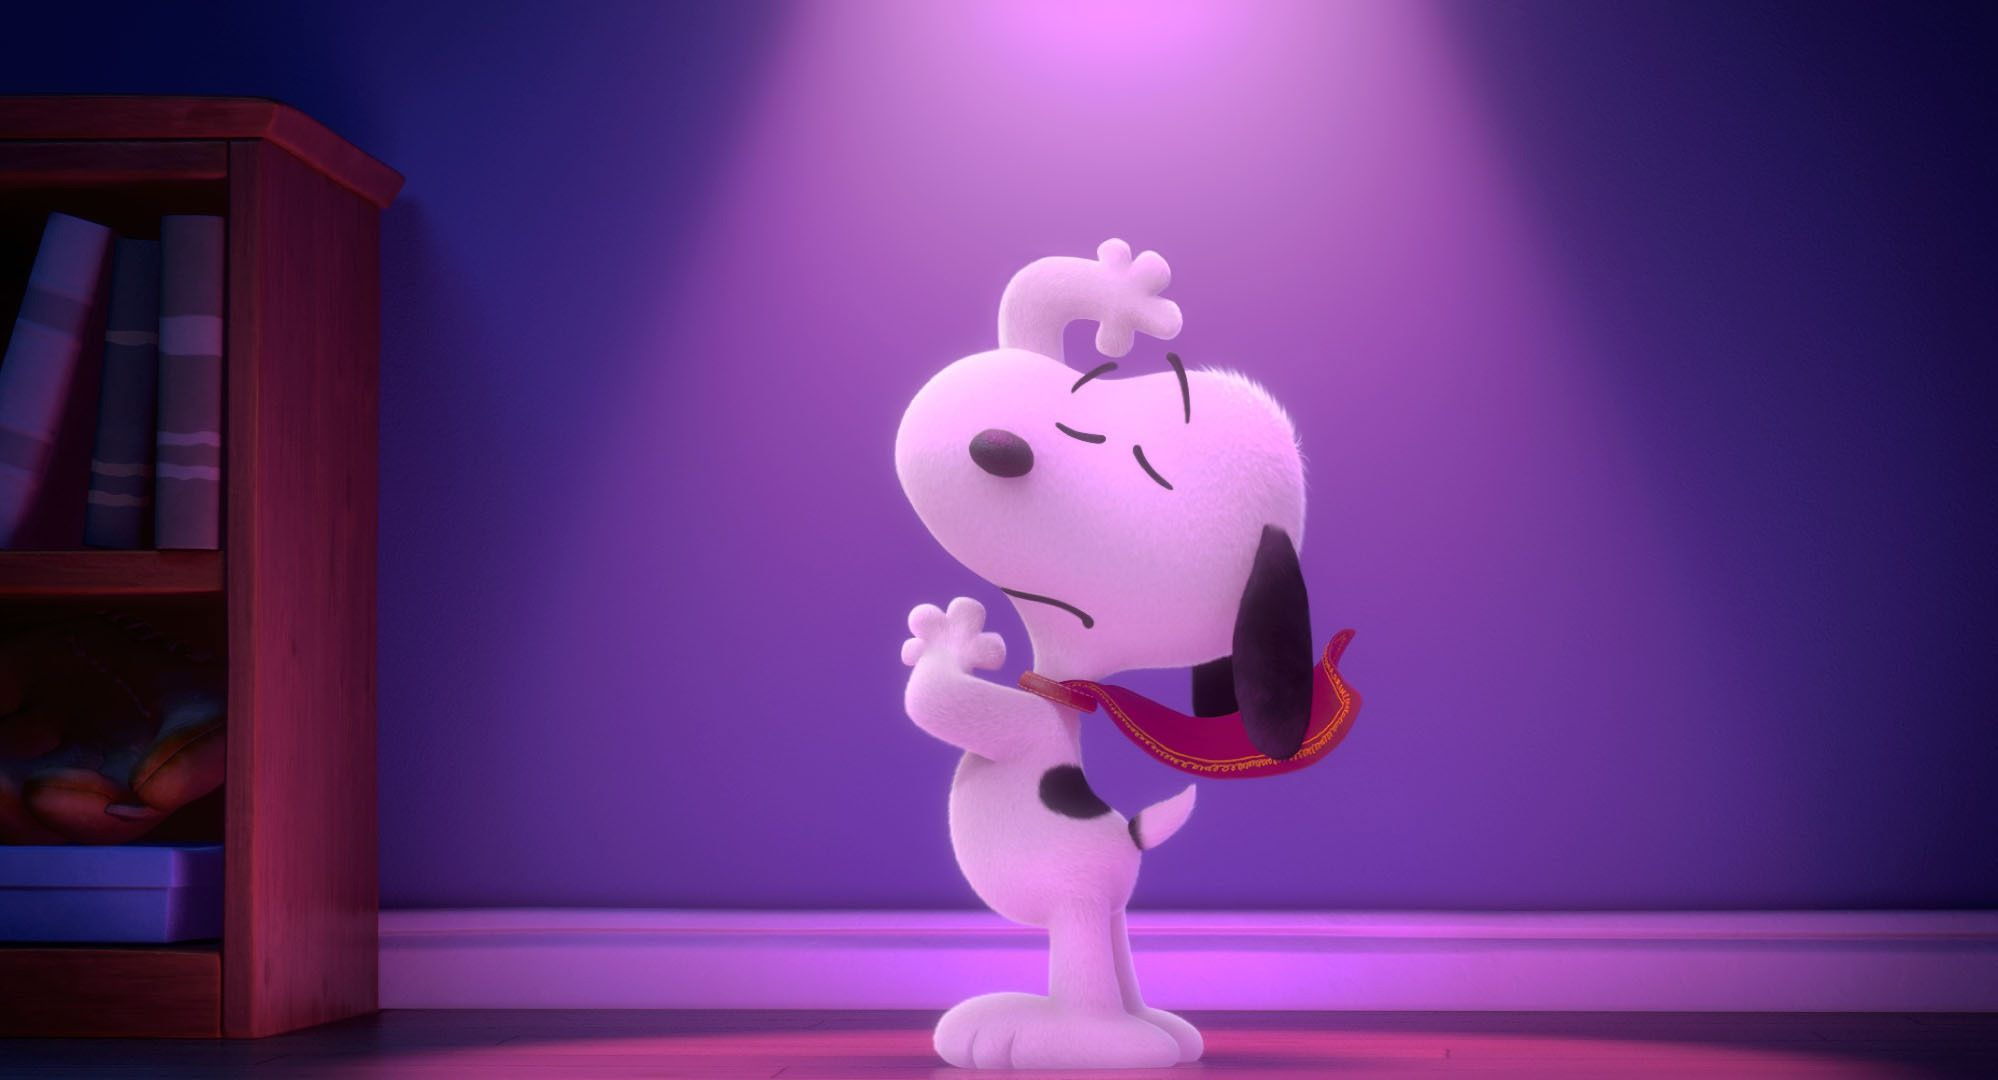 1998x1080 The Peanuts Movie HD Wallpaper | Background Image ...